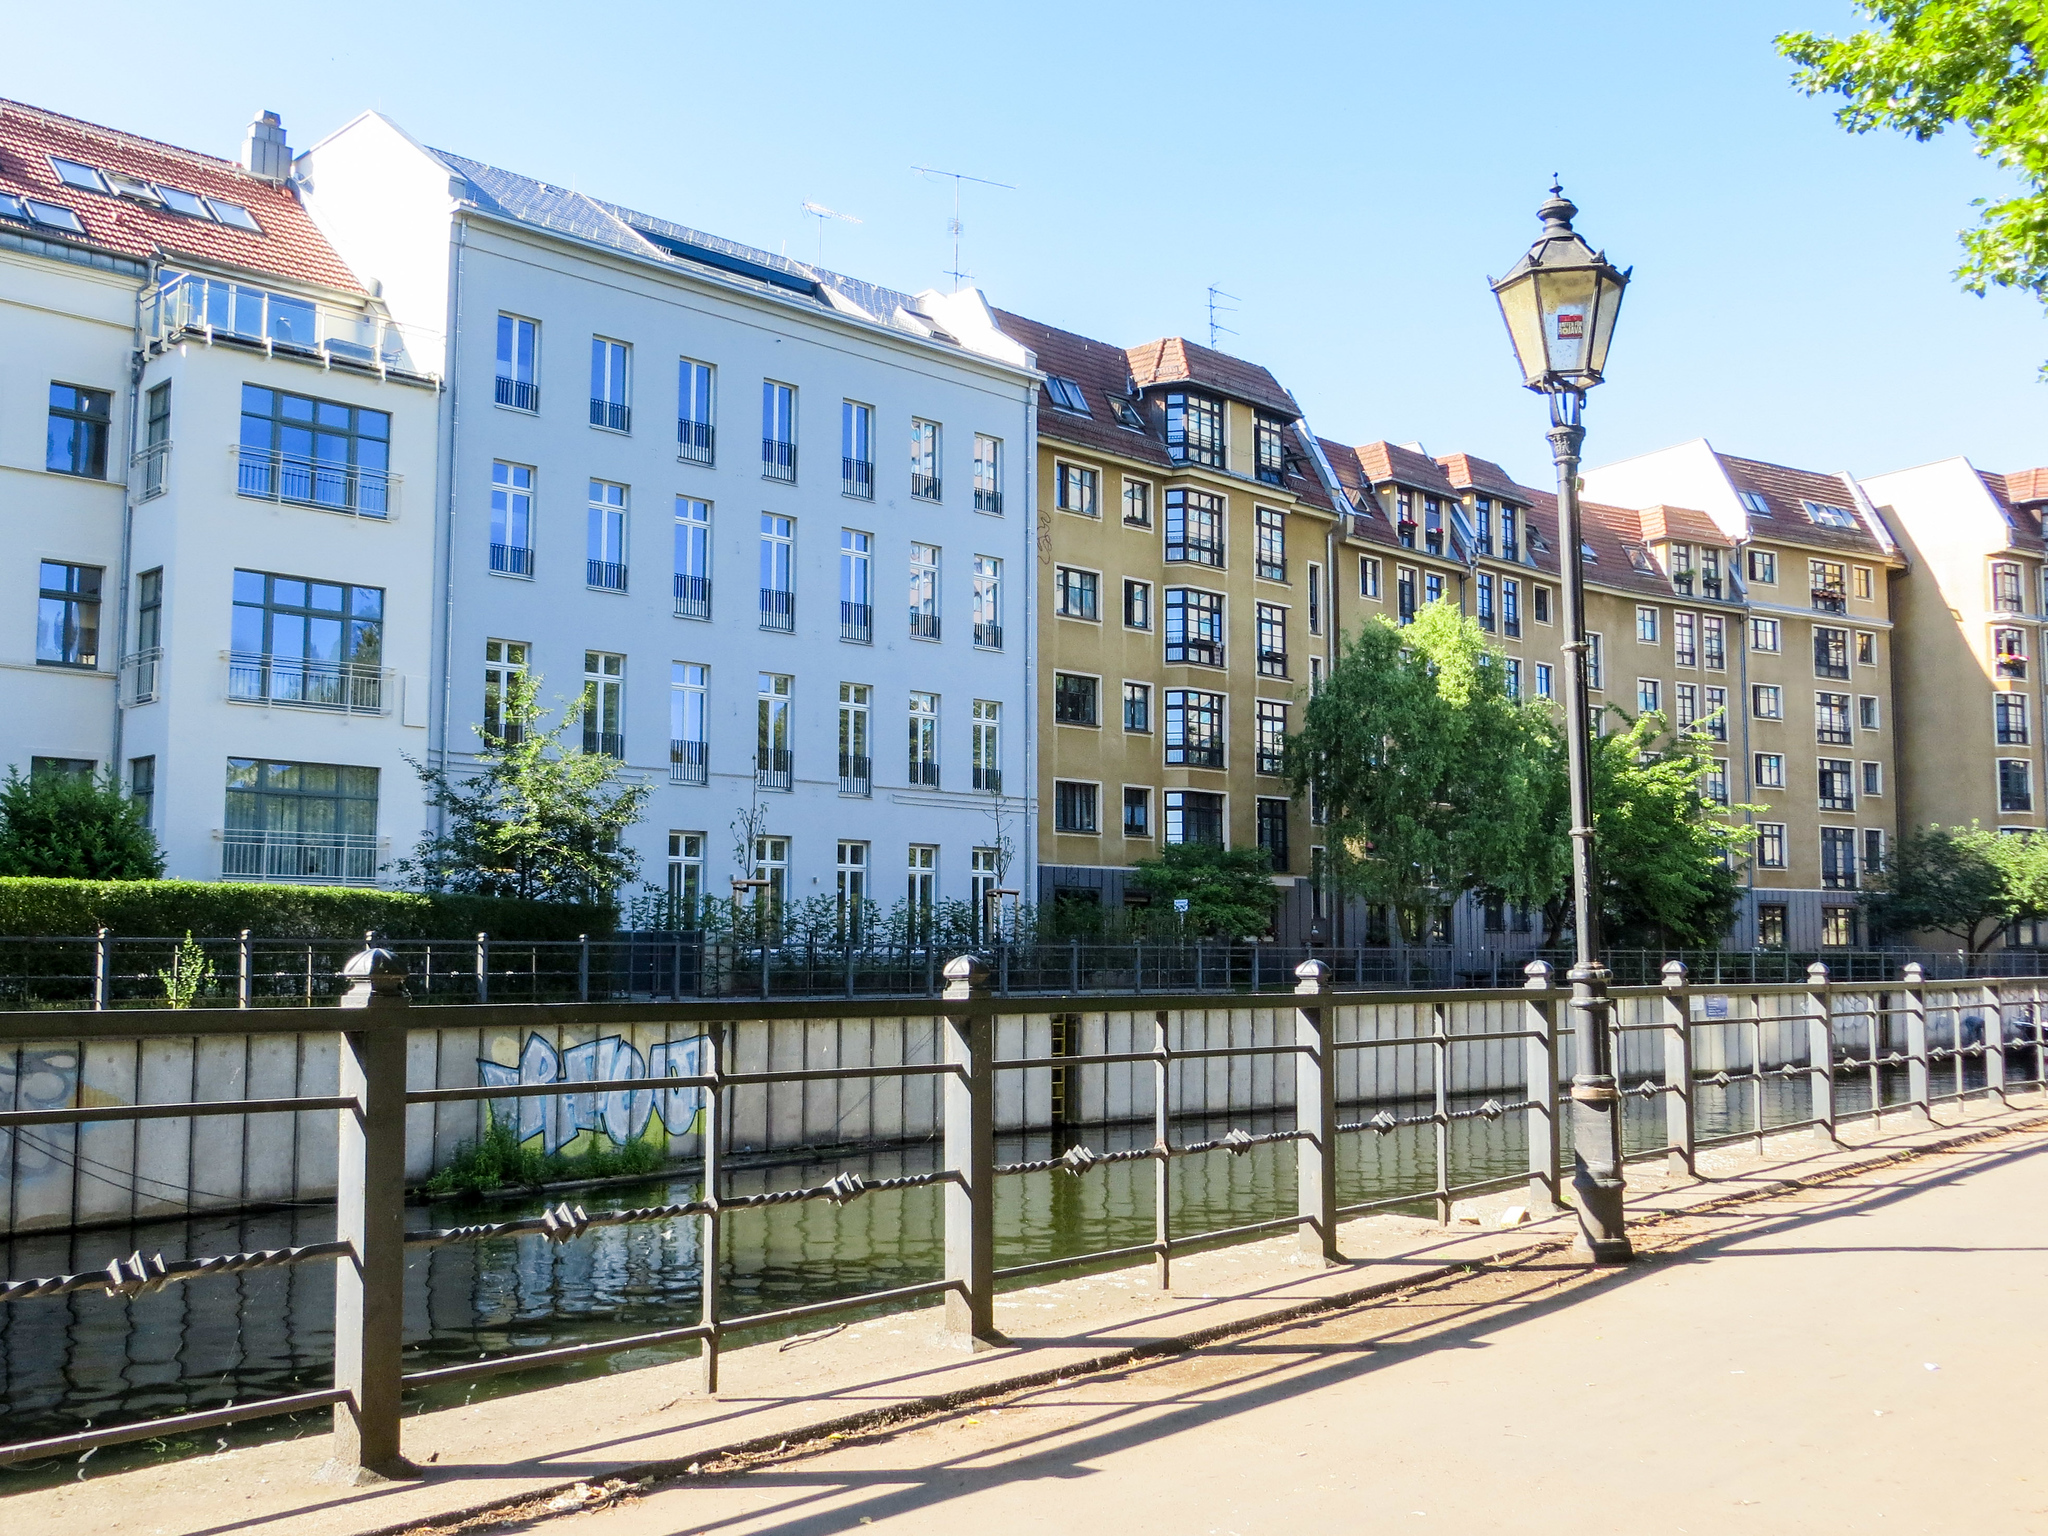 why travel to germany? exploring quirky neighborhoods in berlin